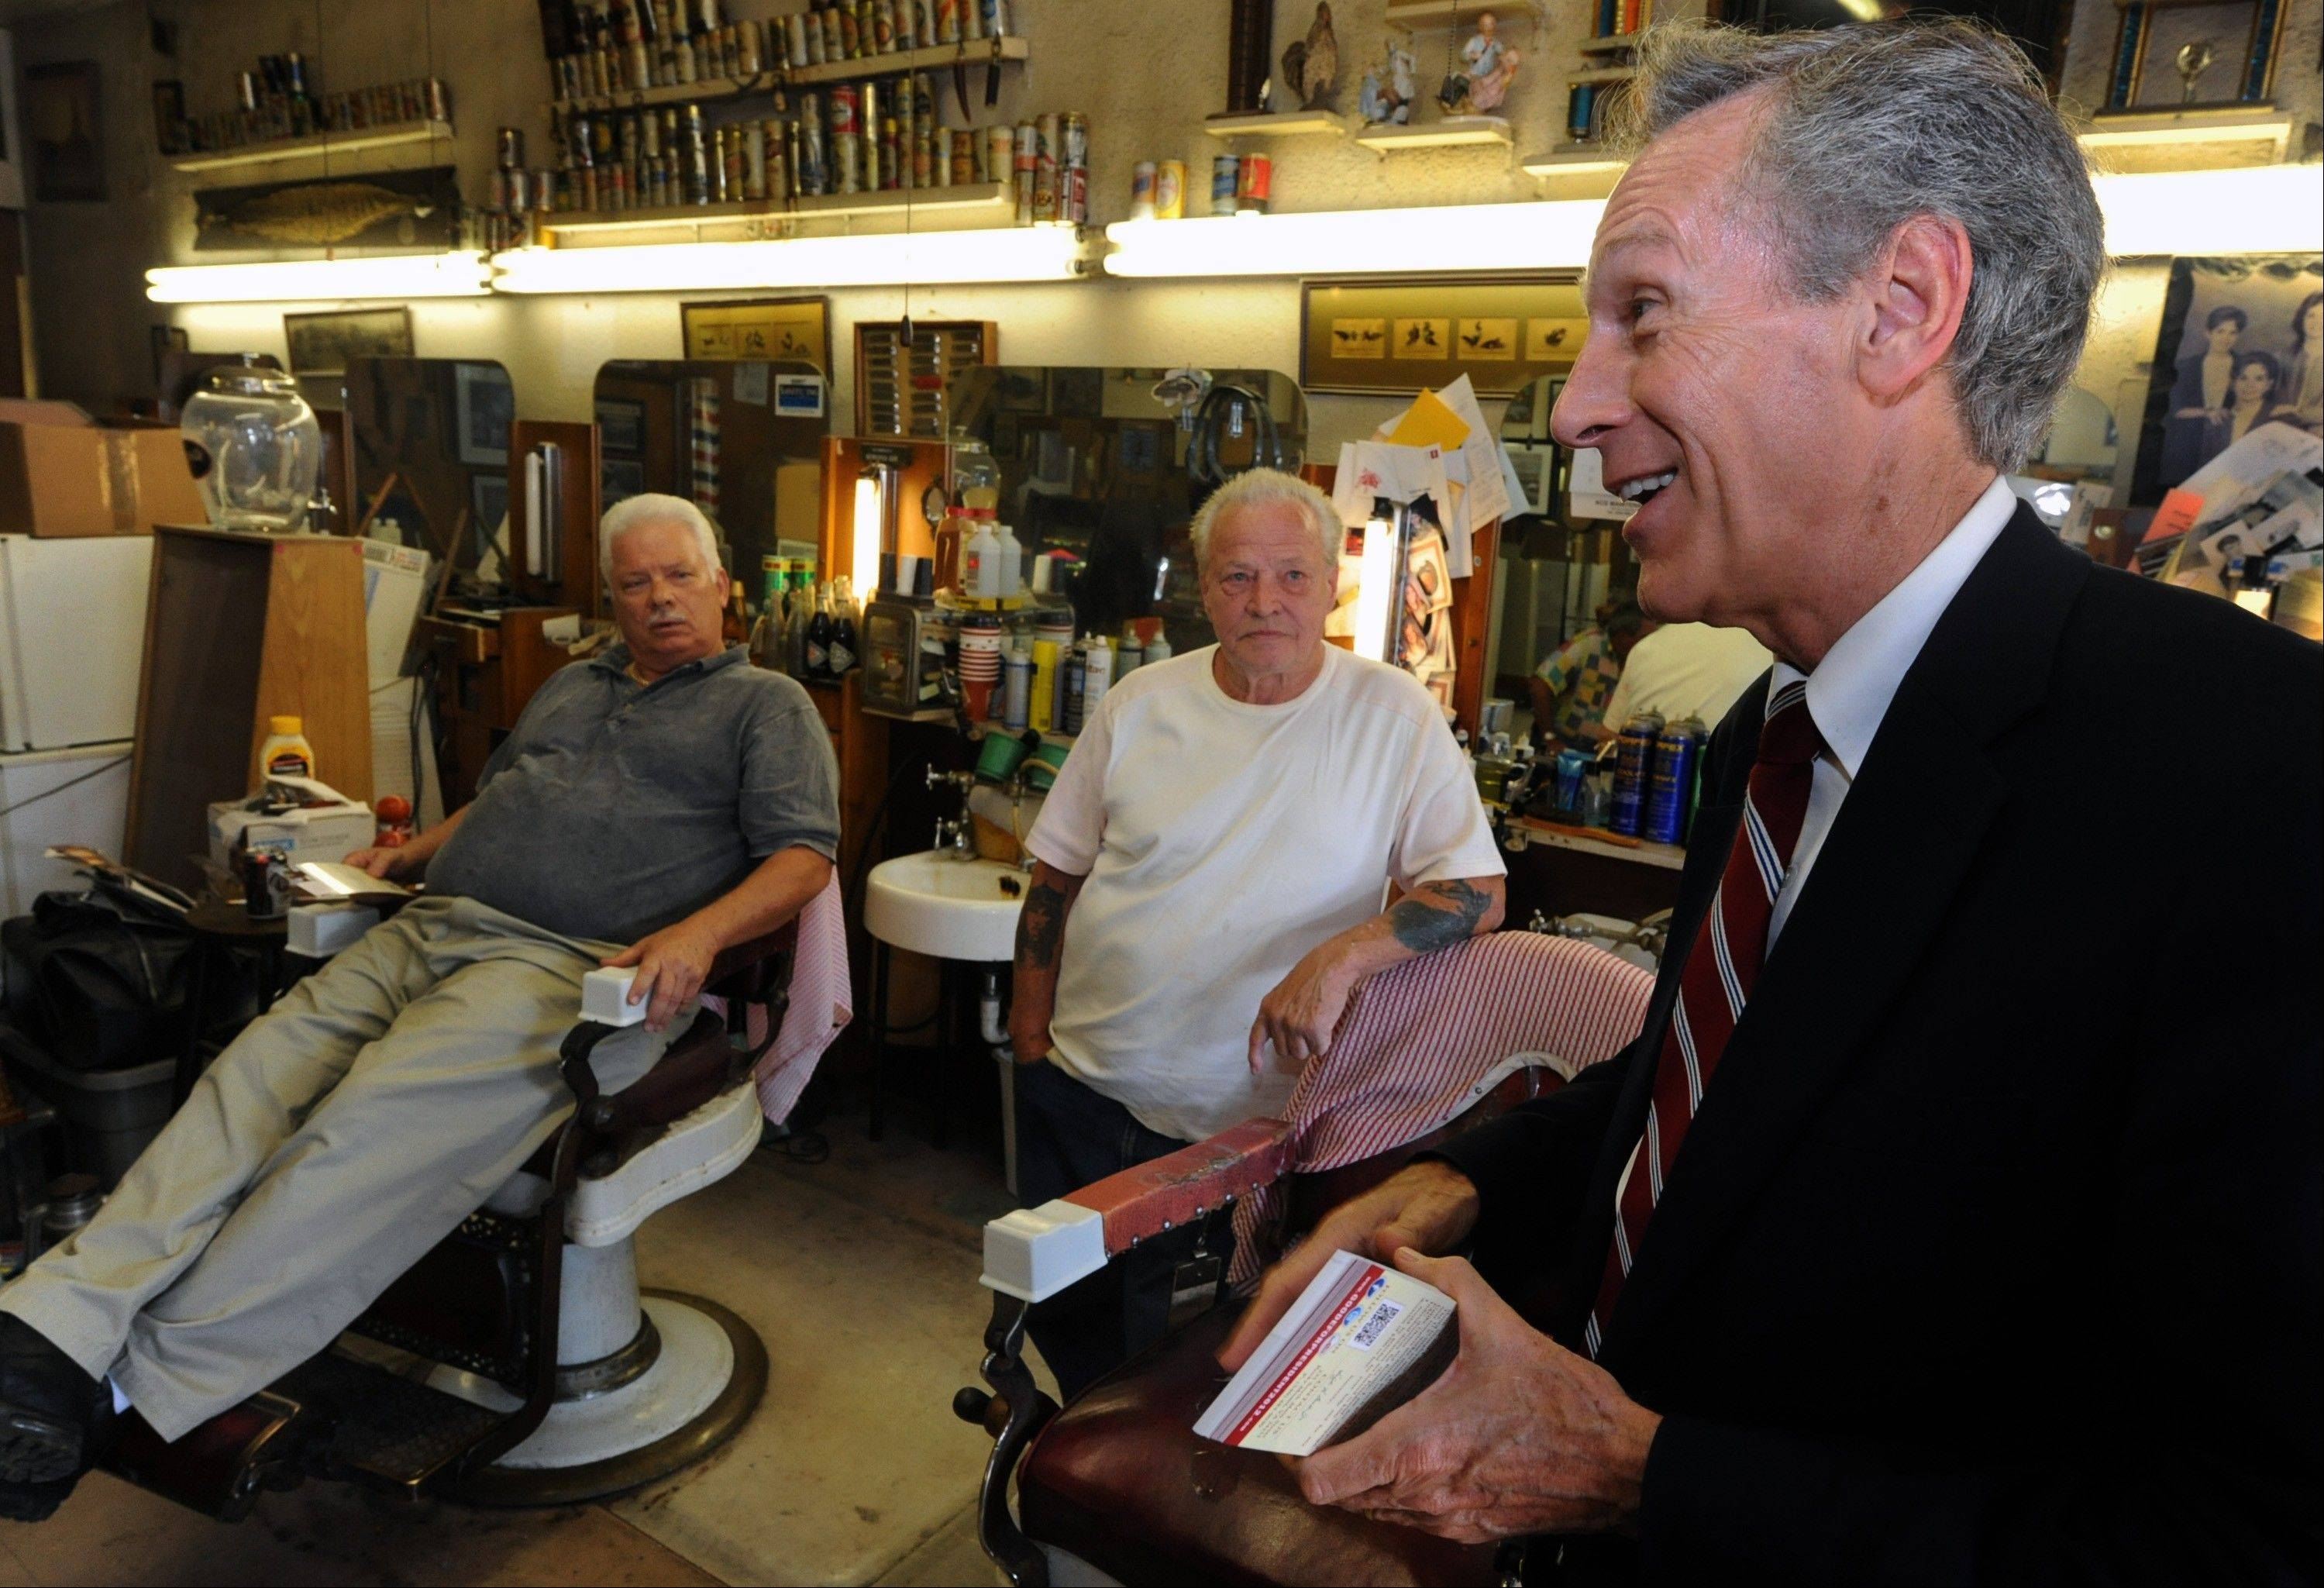 Constitution Party presidential candidate Virgil Goode Jr., right, talks to barber shop owner Alvin Womack, center, and Terry Womack while campaigning in Lynchburg, Va.